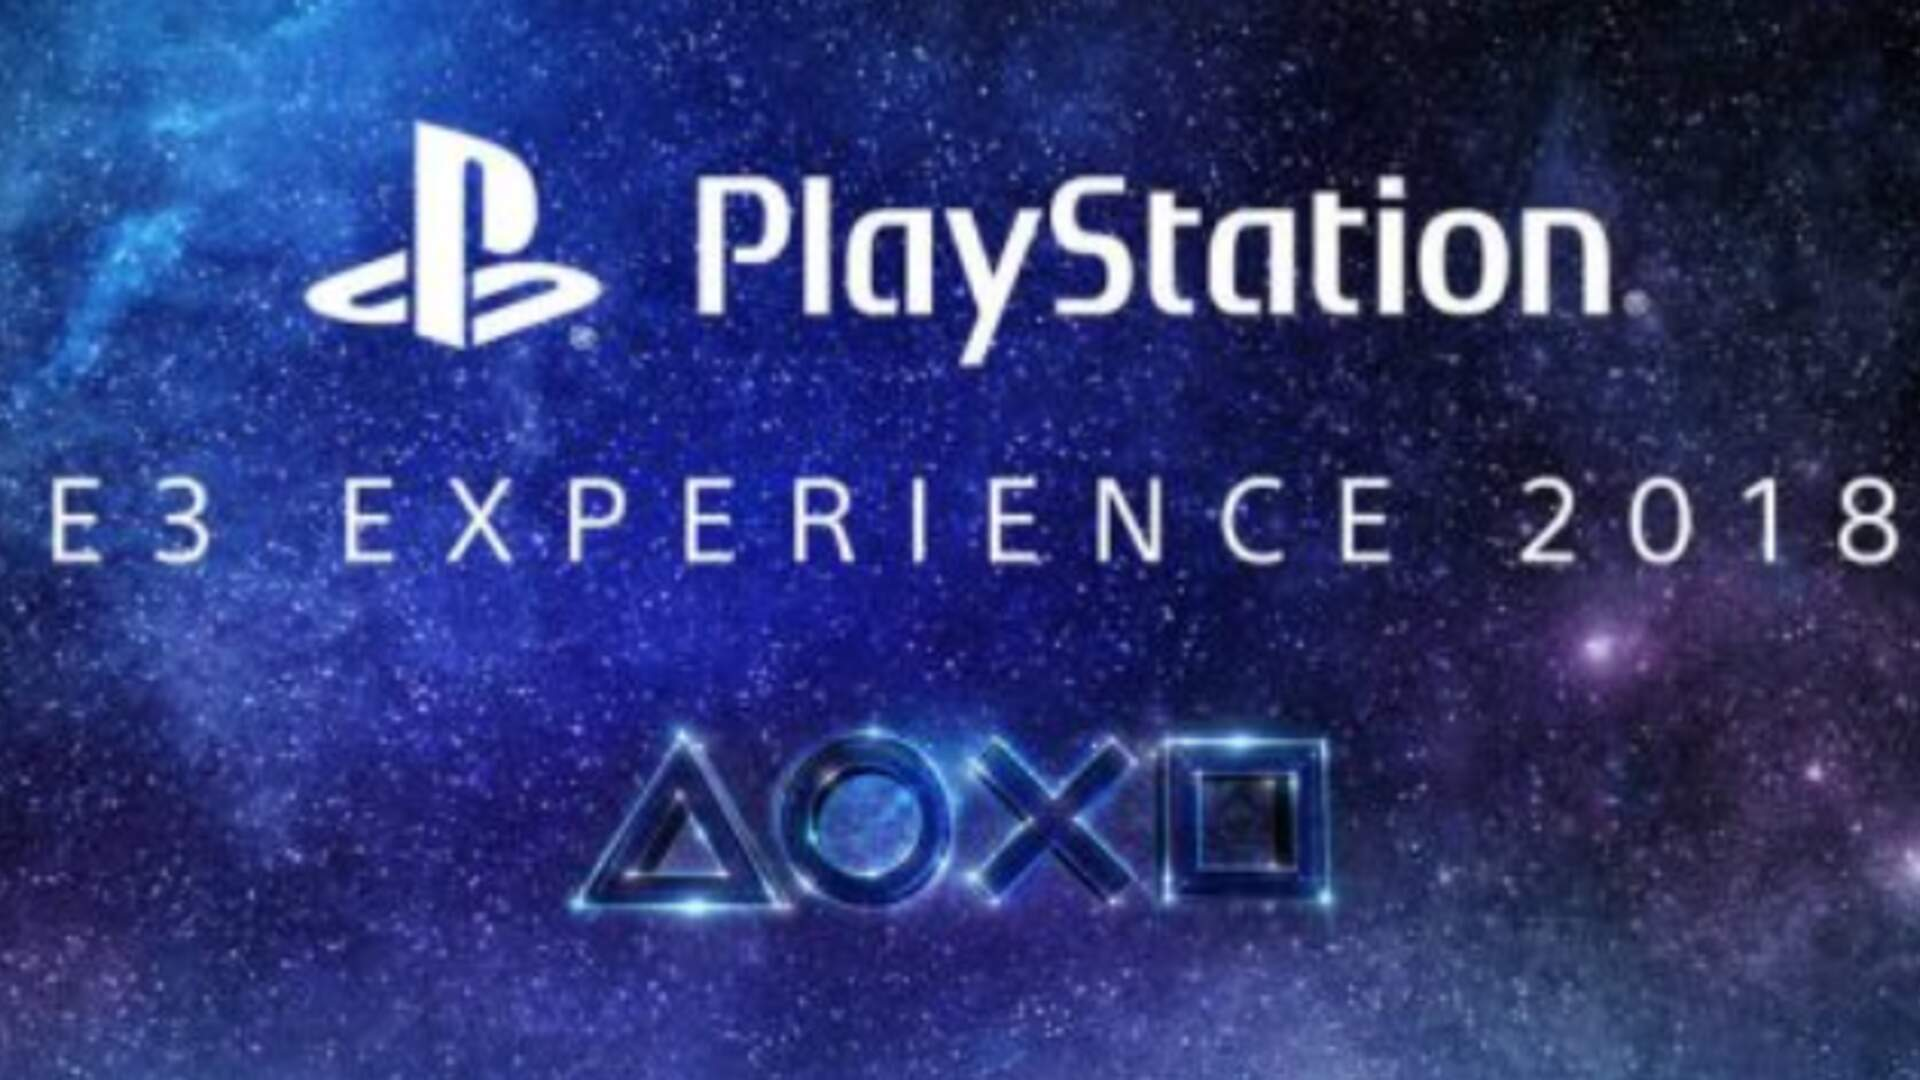 PlayStation E3 Experience Will Livestream Sony's Press Conference in Theaters